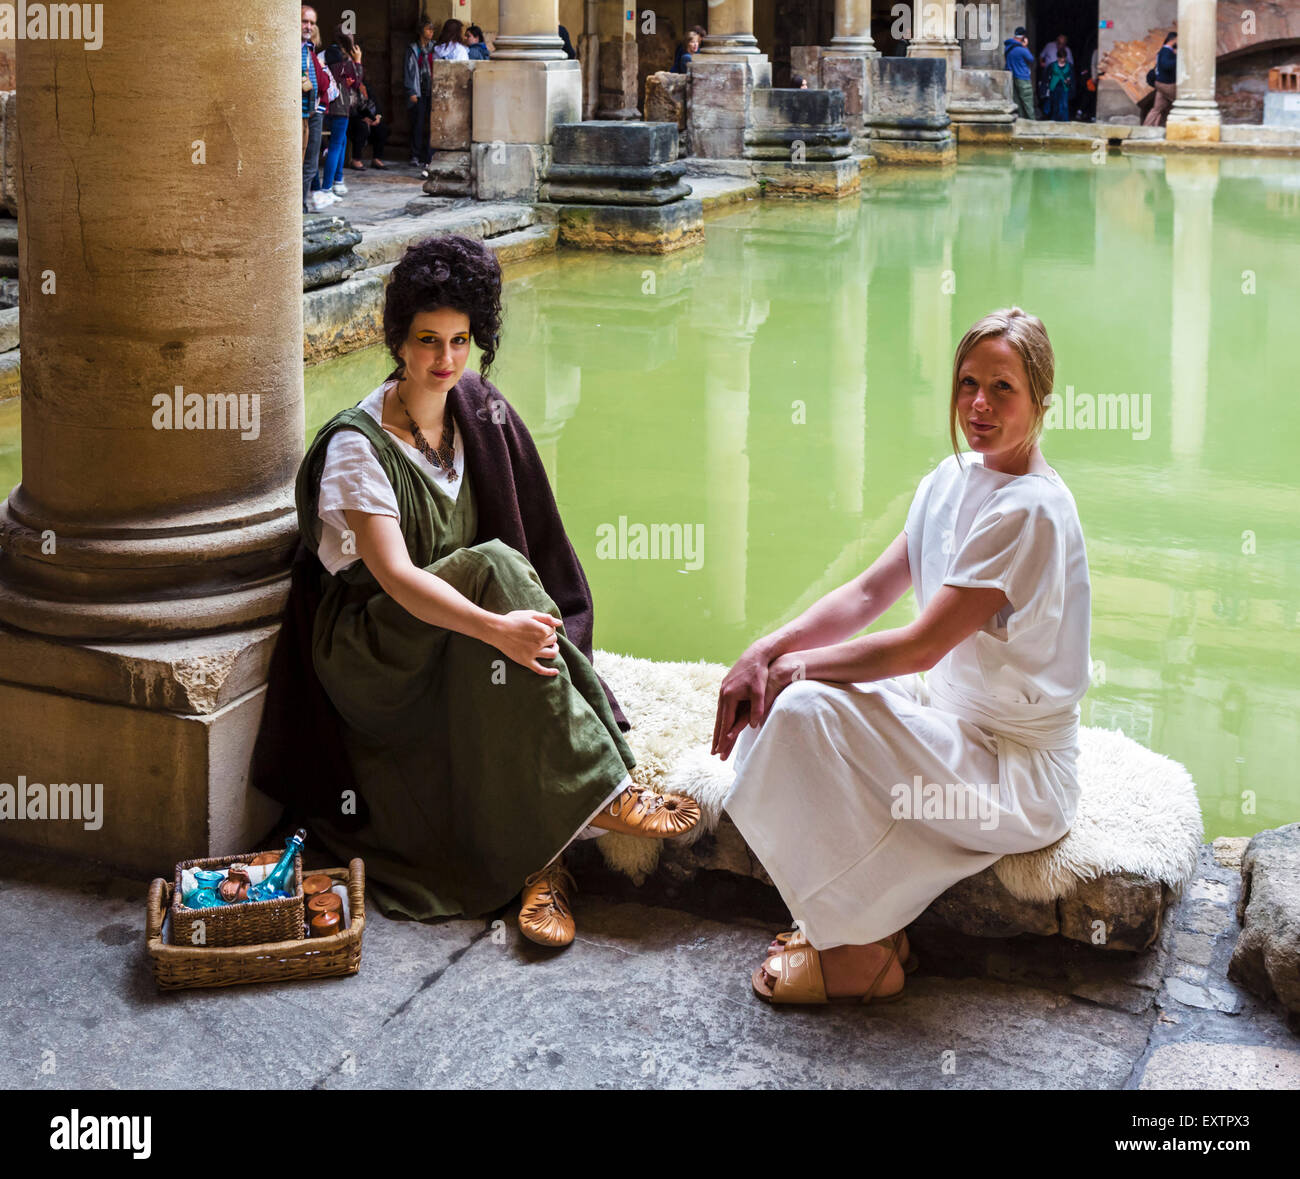 Re-enactors wearing Roman costume by the Great Bath at the Roman Baths in Bath, Somerset, England, UK - Stock Image